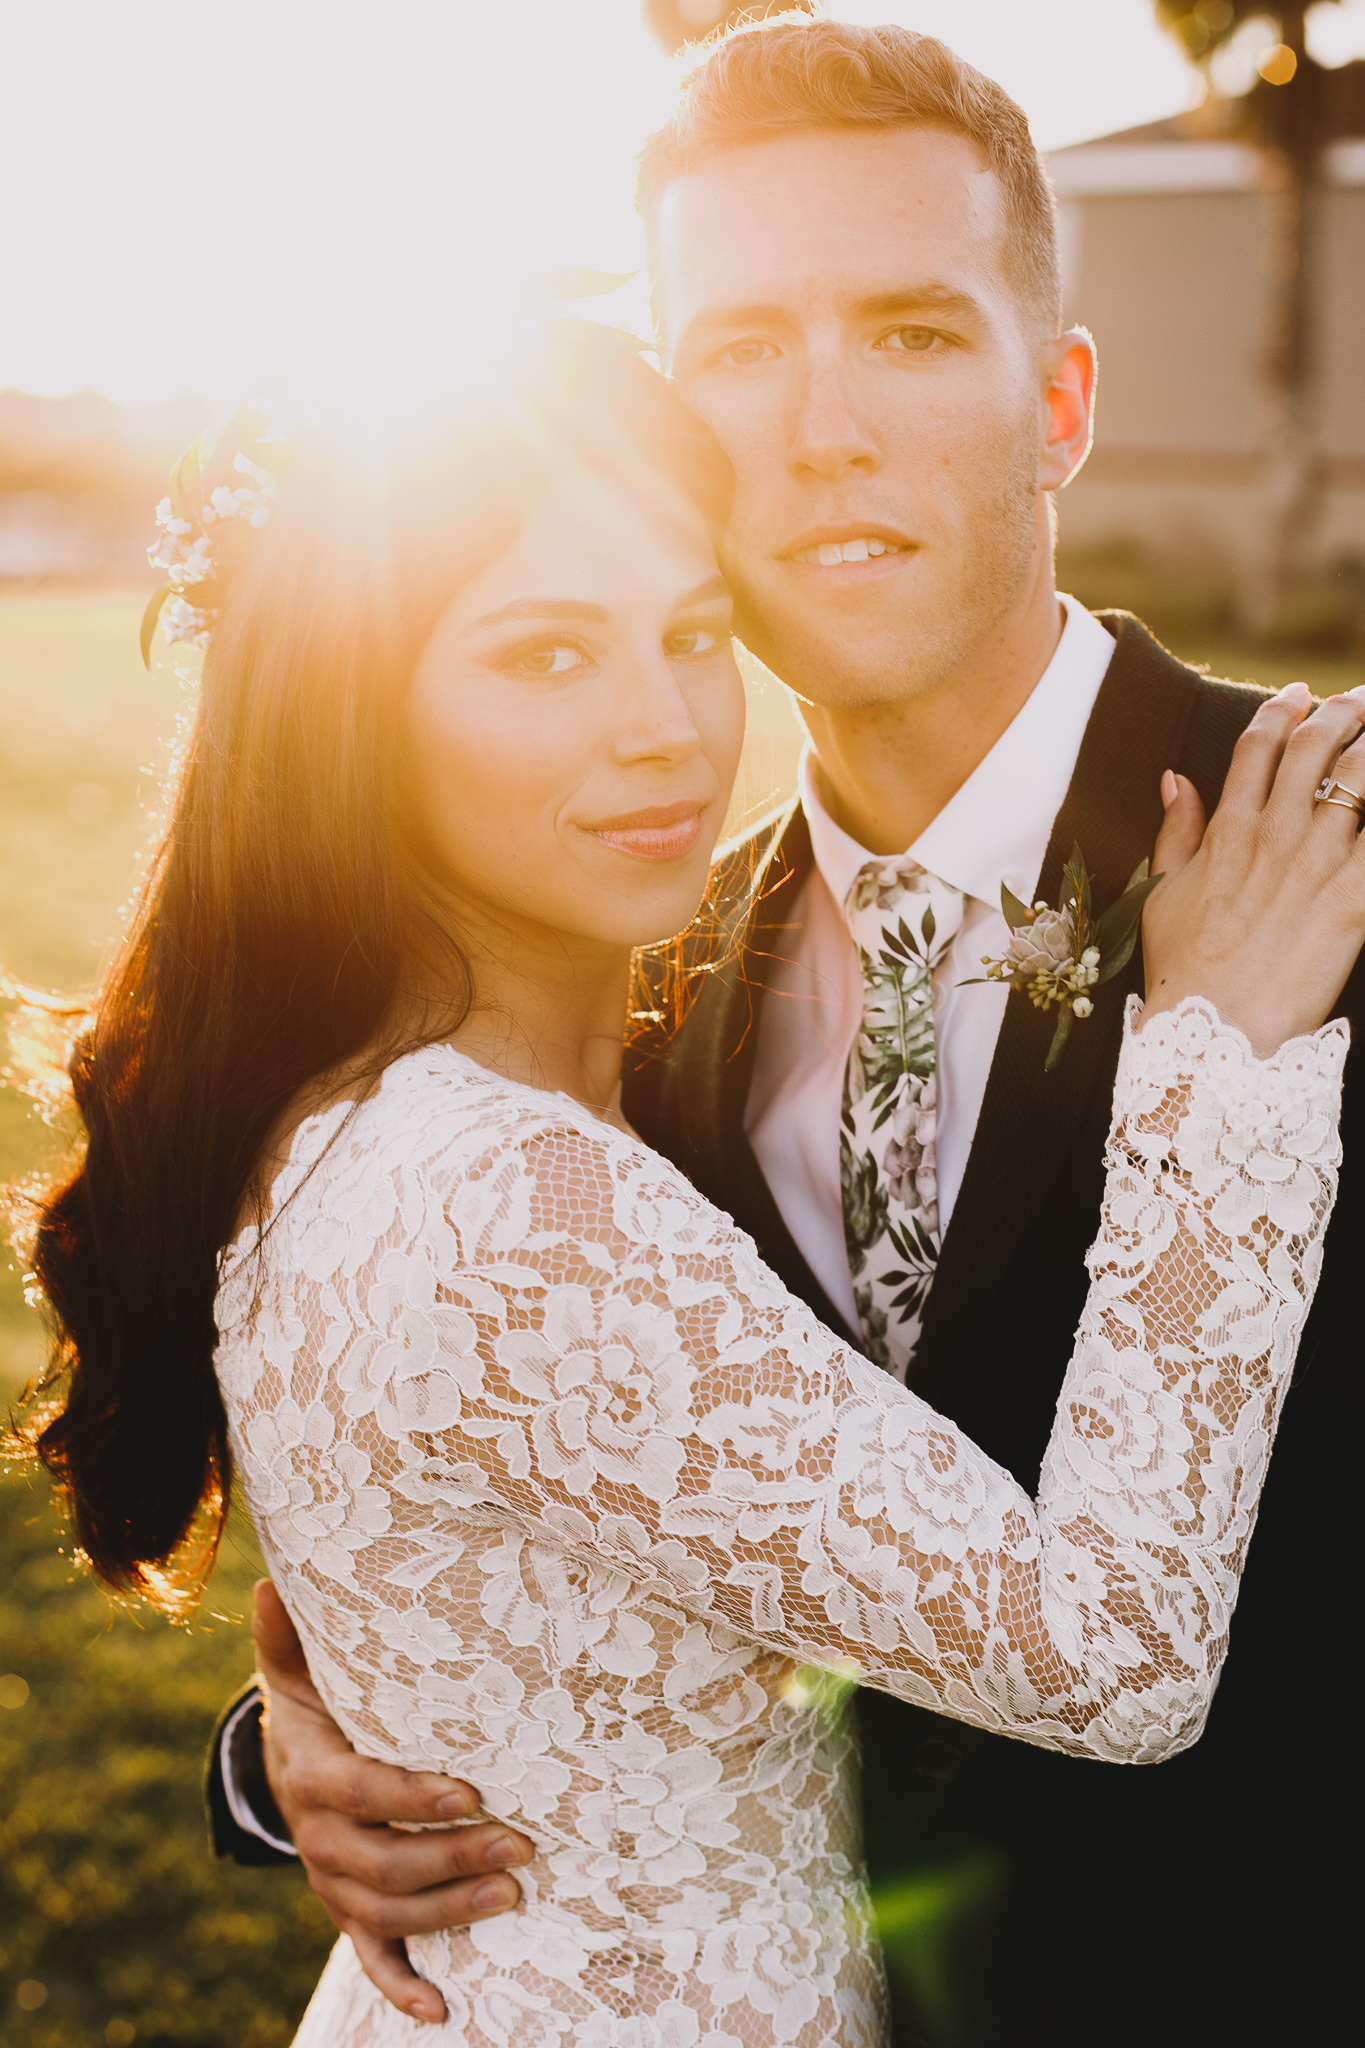 Archer Inspired Photography Lauren and Derek Long Beach Orange County Wedding Elopement-284.jpg